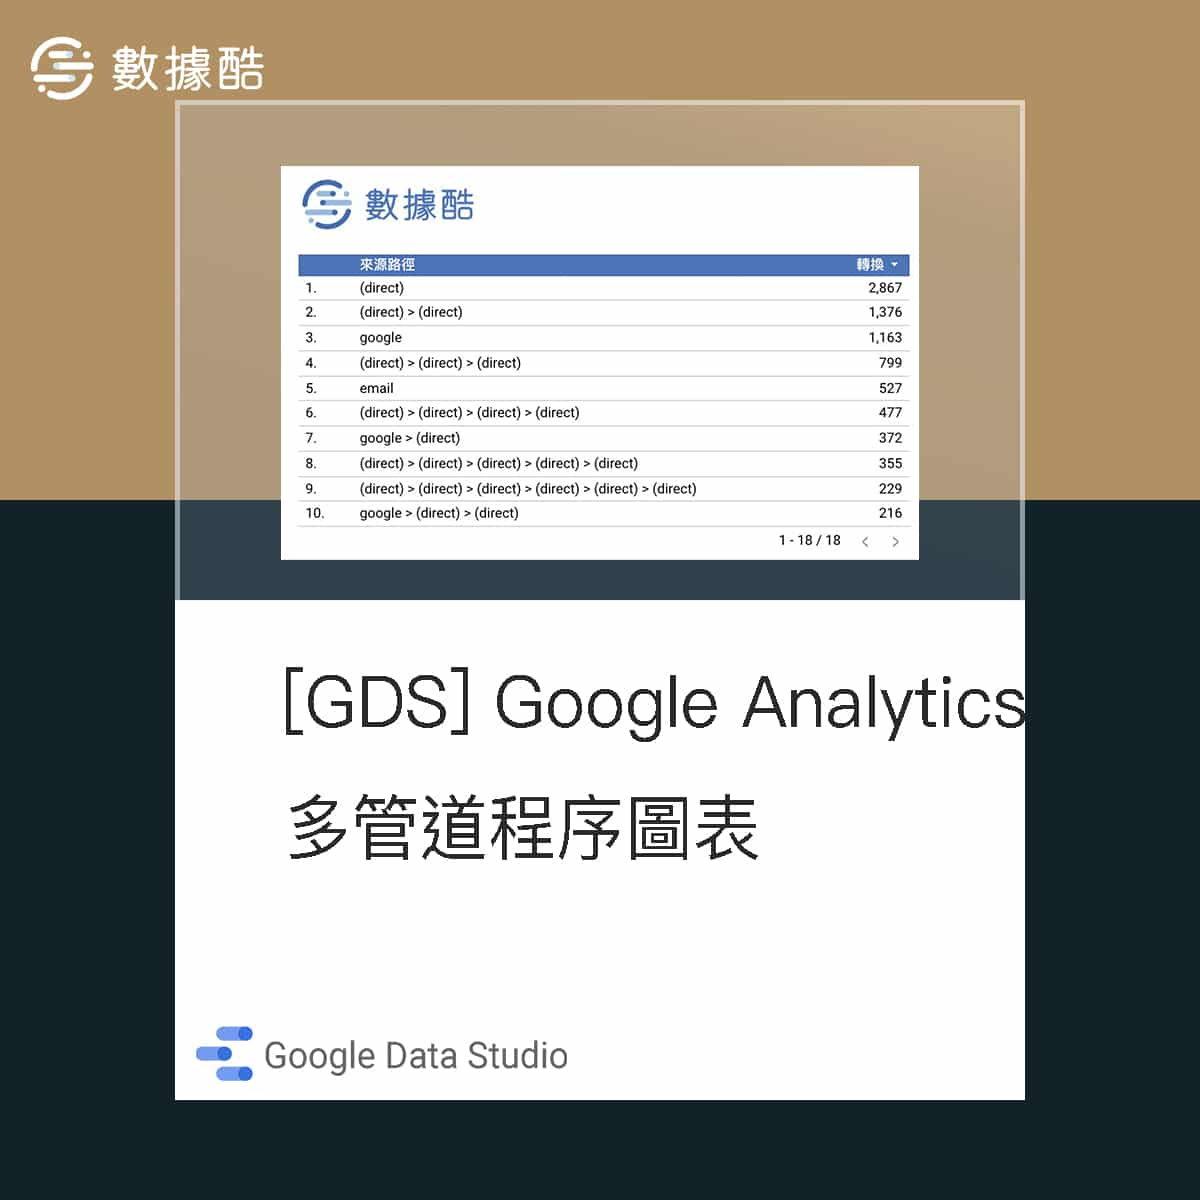 Google Data Studio 建立 Google Analytics 多管道程序圖表